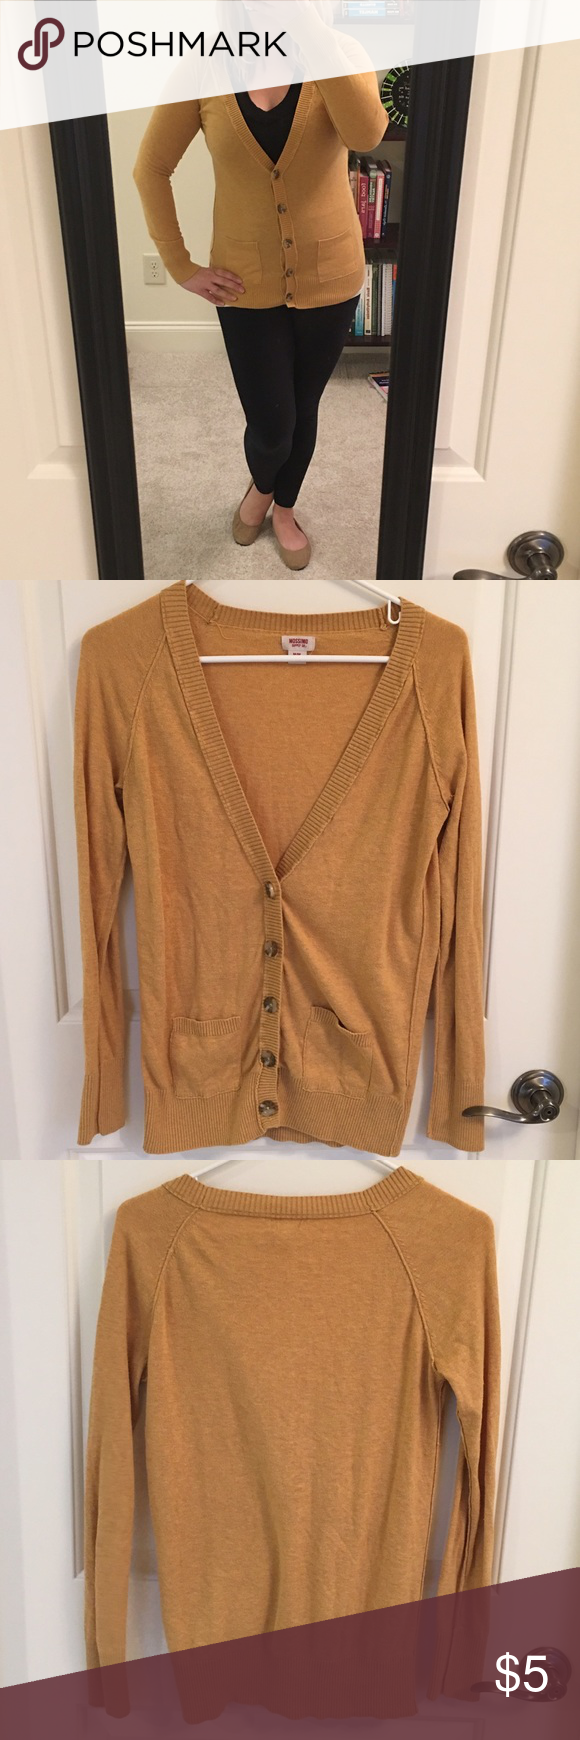 Yellow Boyfriend Cardigan | Sweater cardigan, Boyfriend cardigan ...